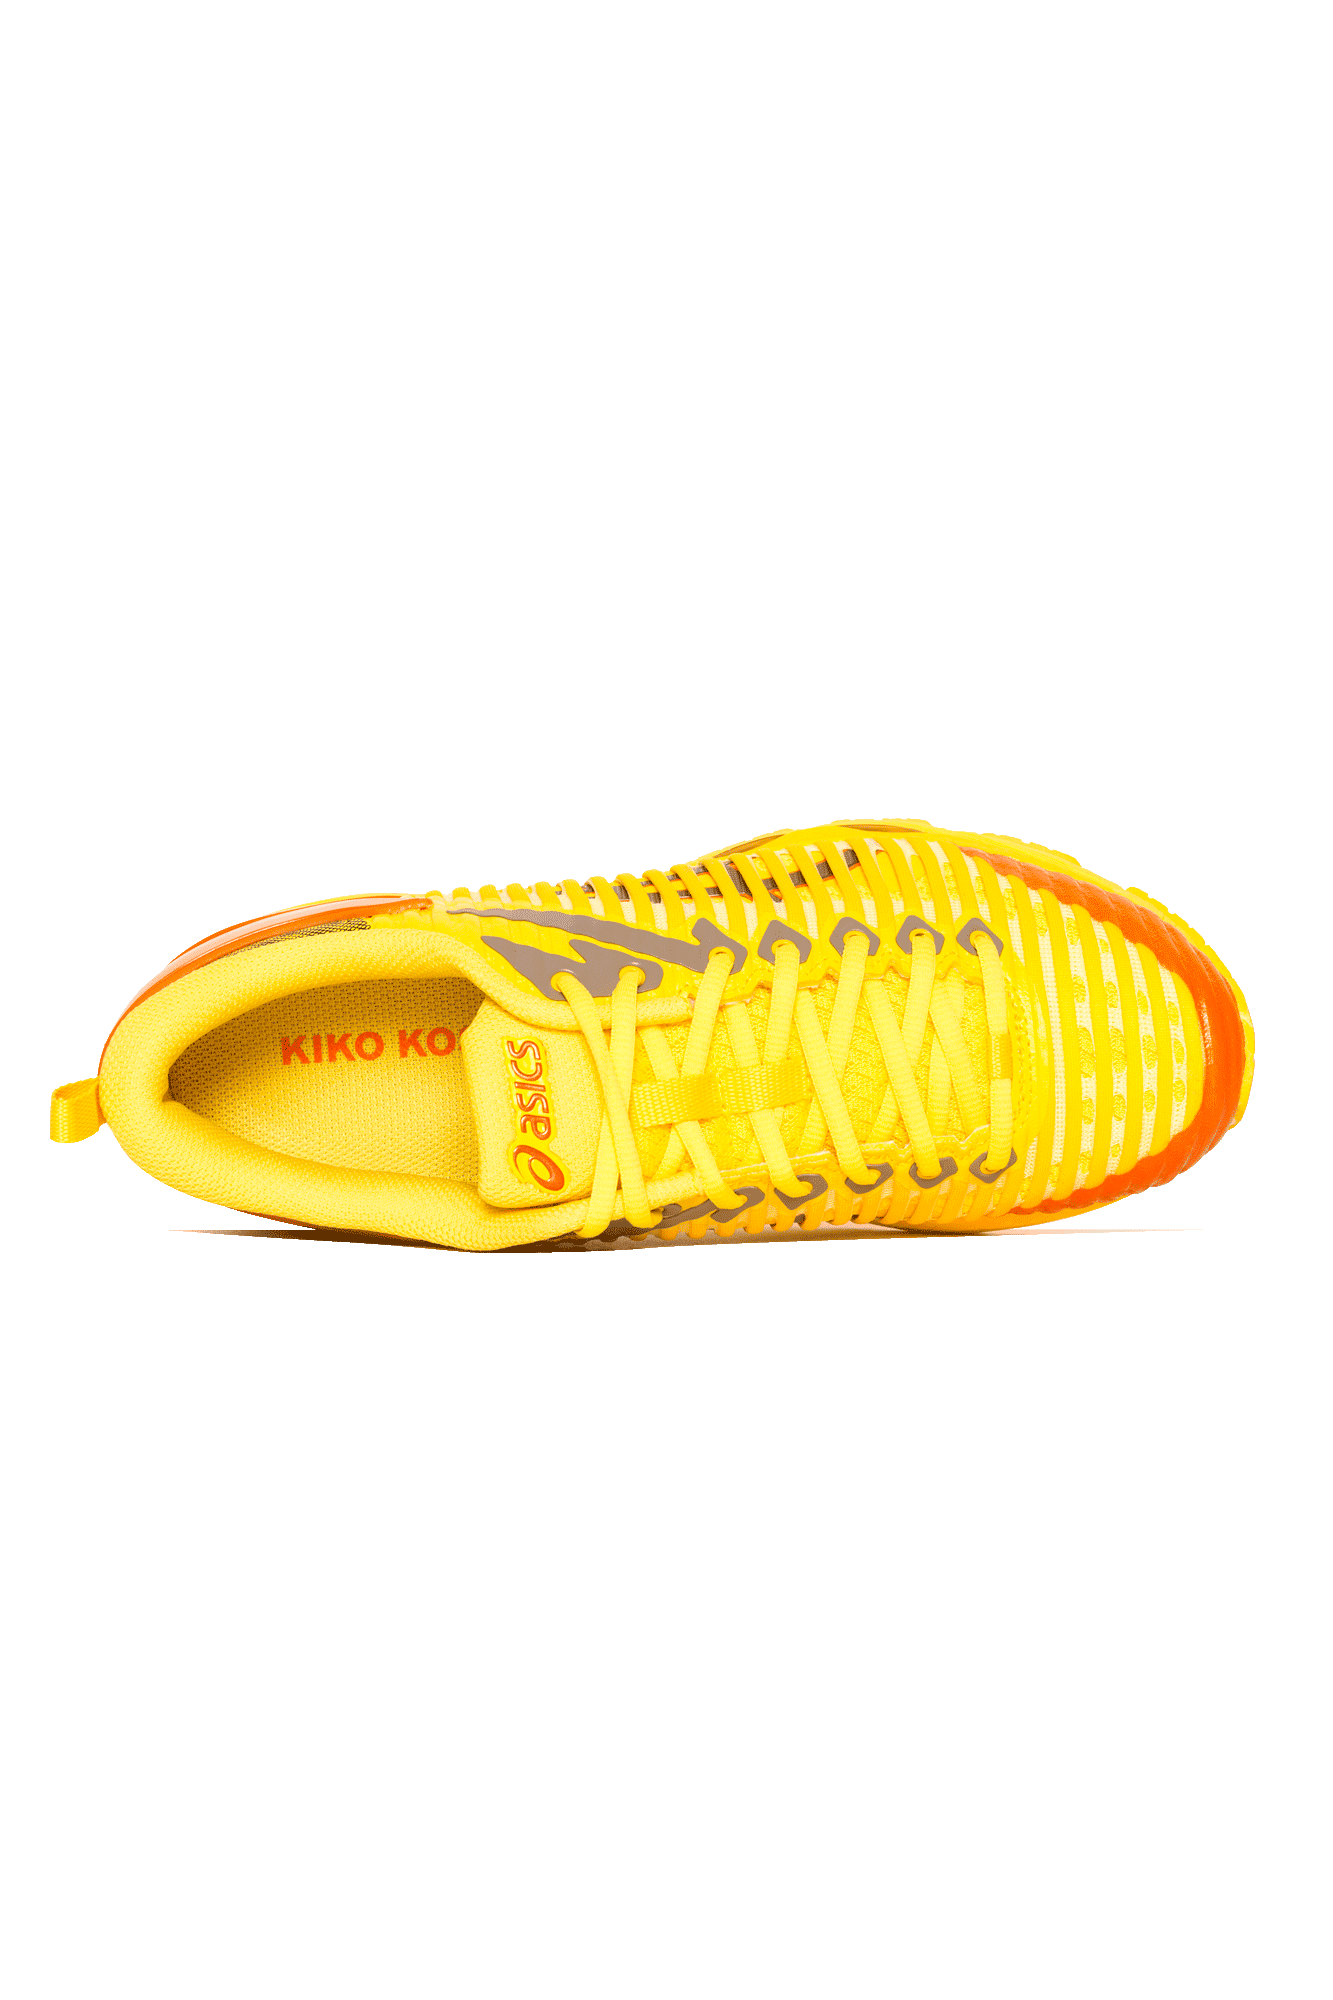 Asics Sneakers Gel Delva x Kiko Kostadinov Yellow 1013A041#000#750#6,5 - One Block Down